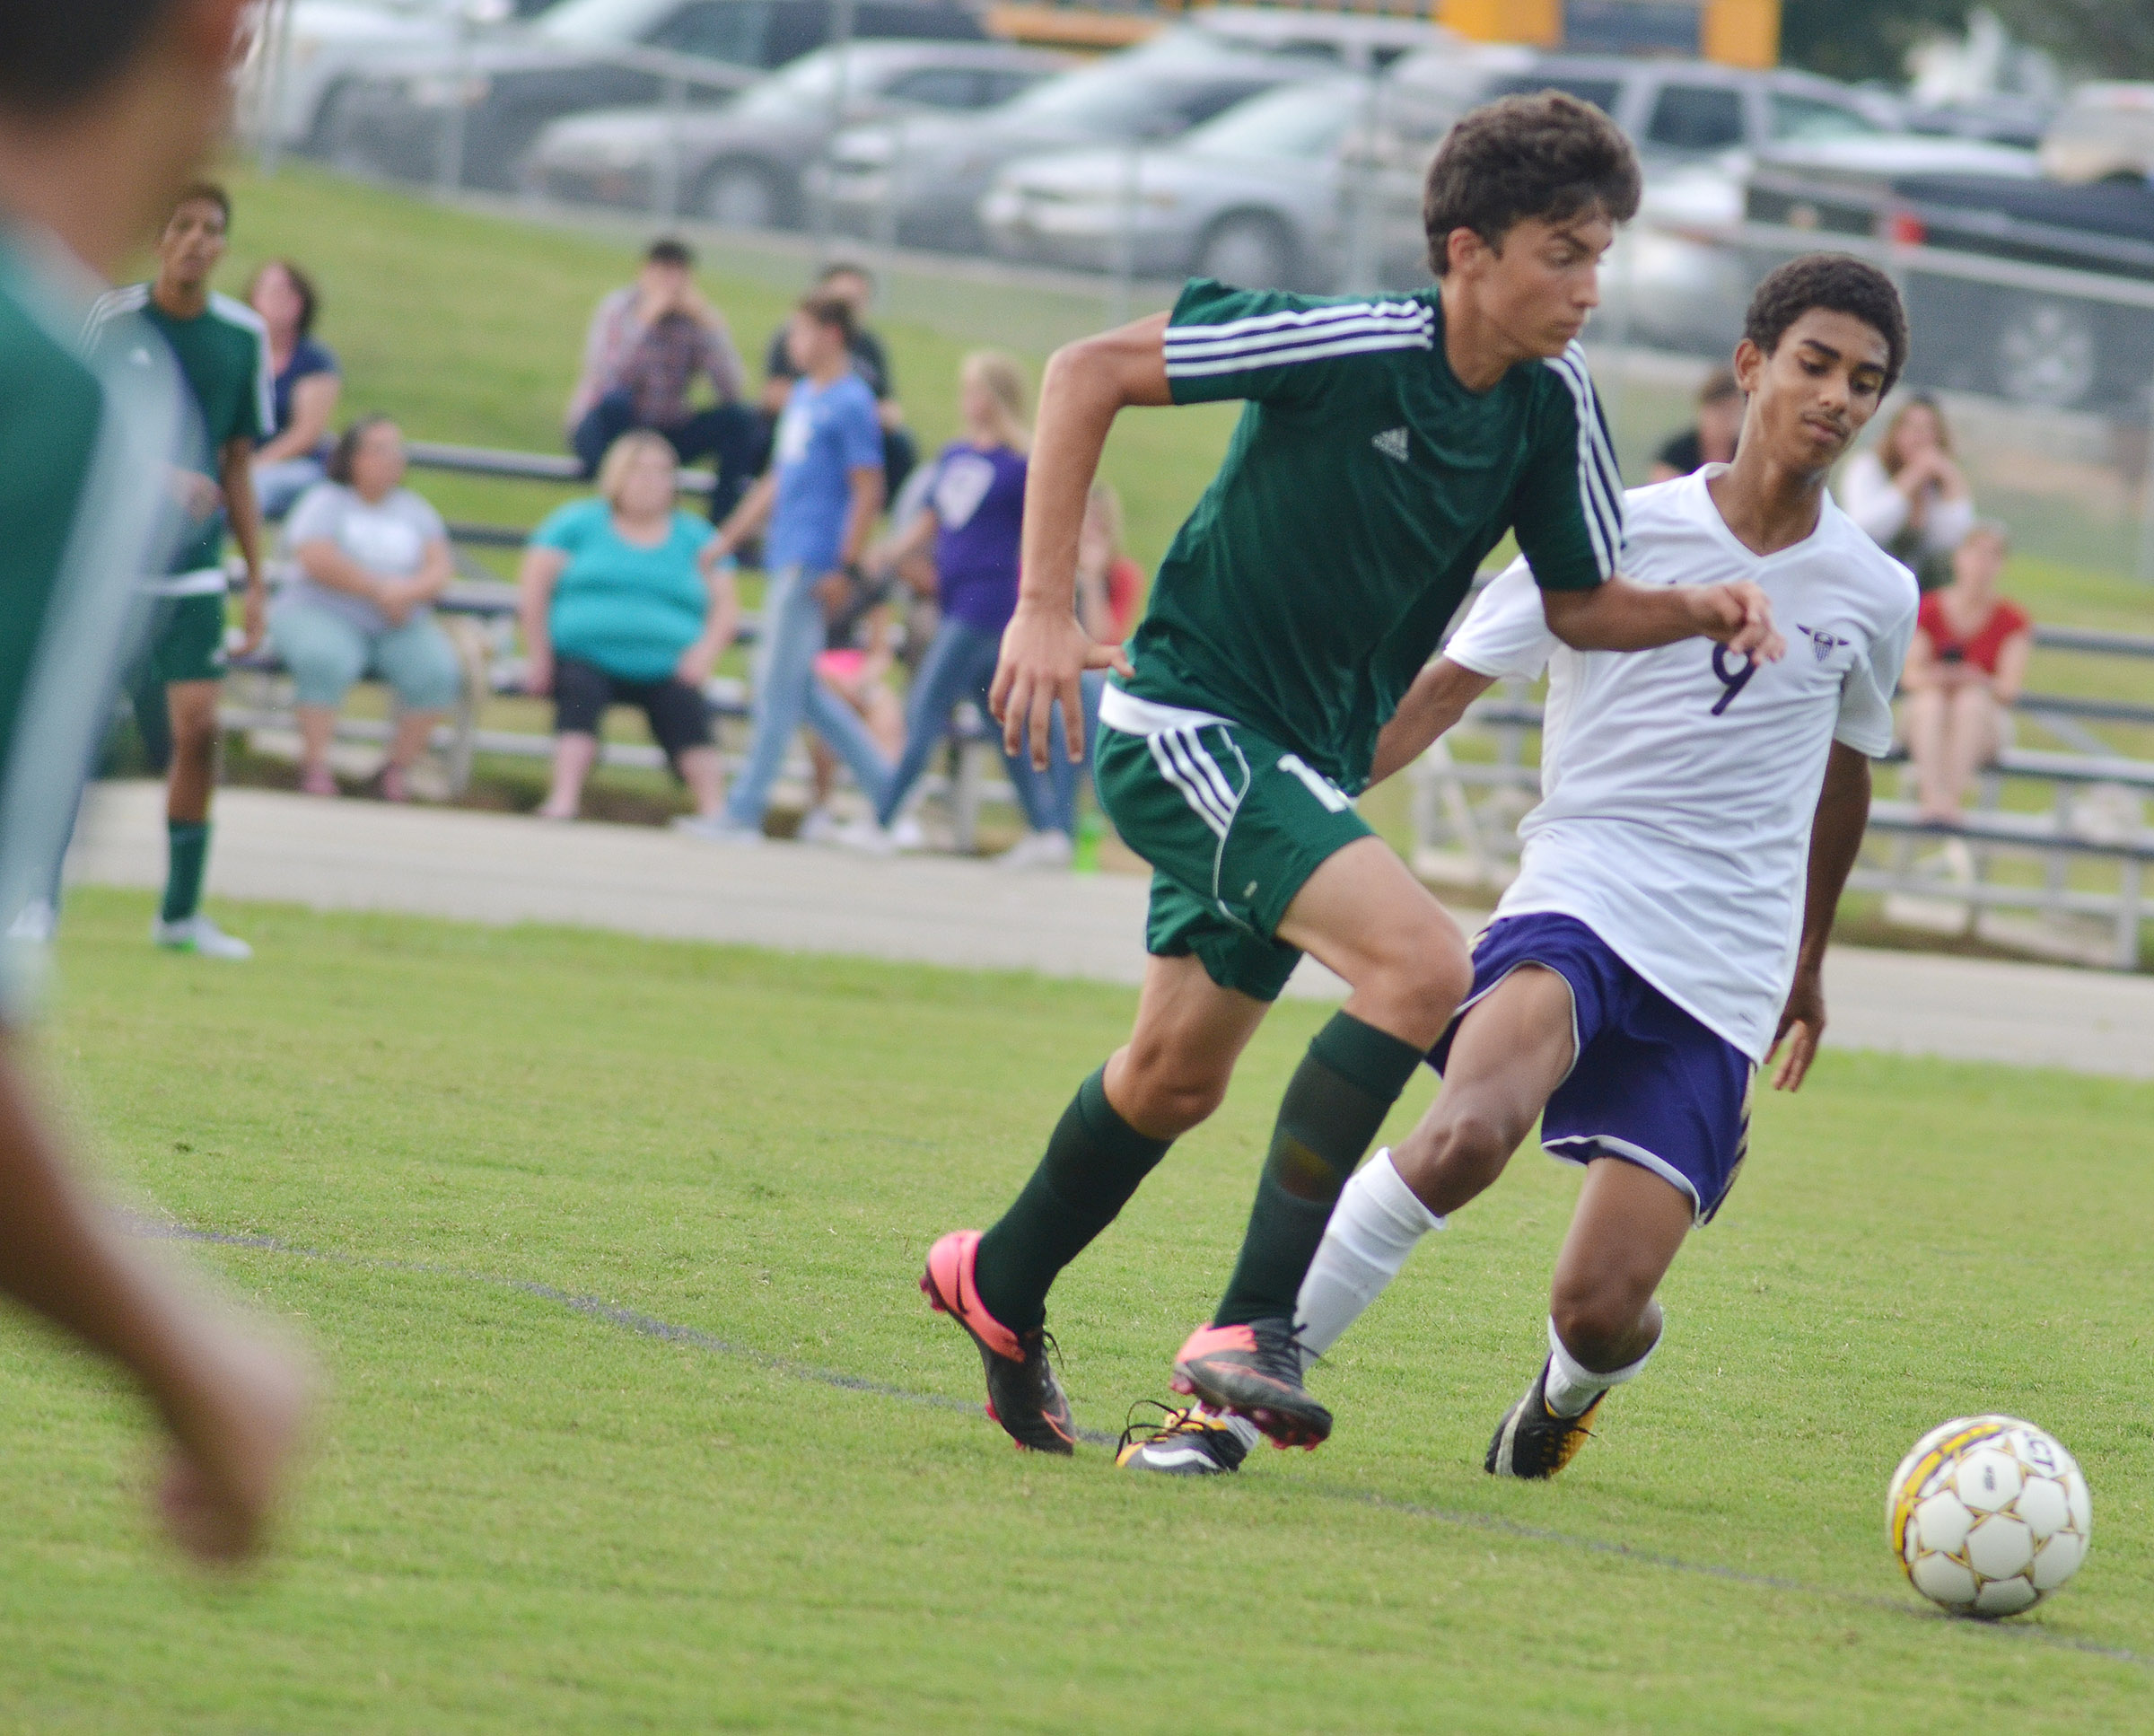 CHS sophomore David Silva runs to the ball.